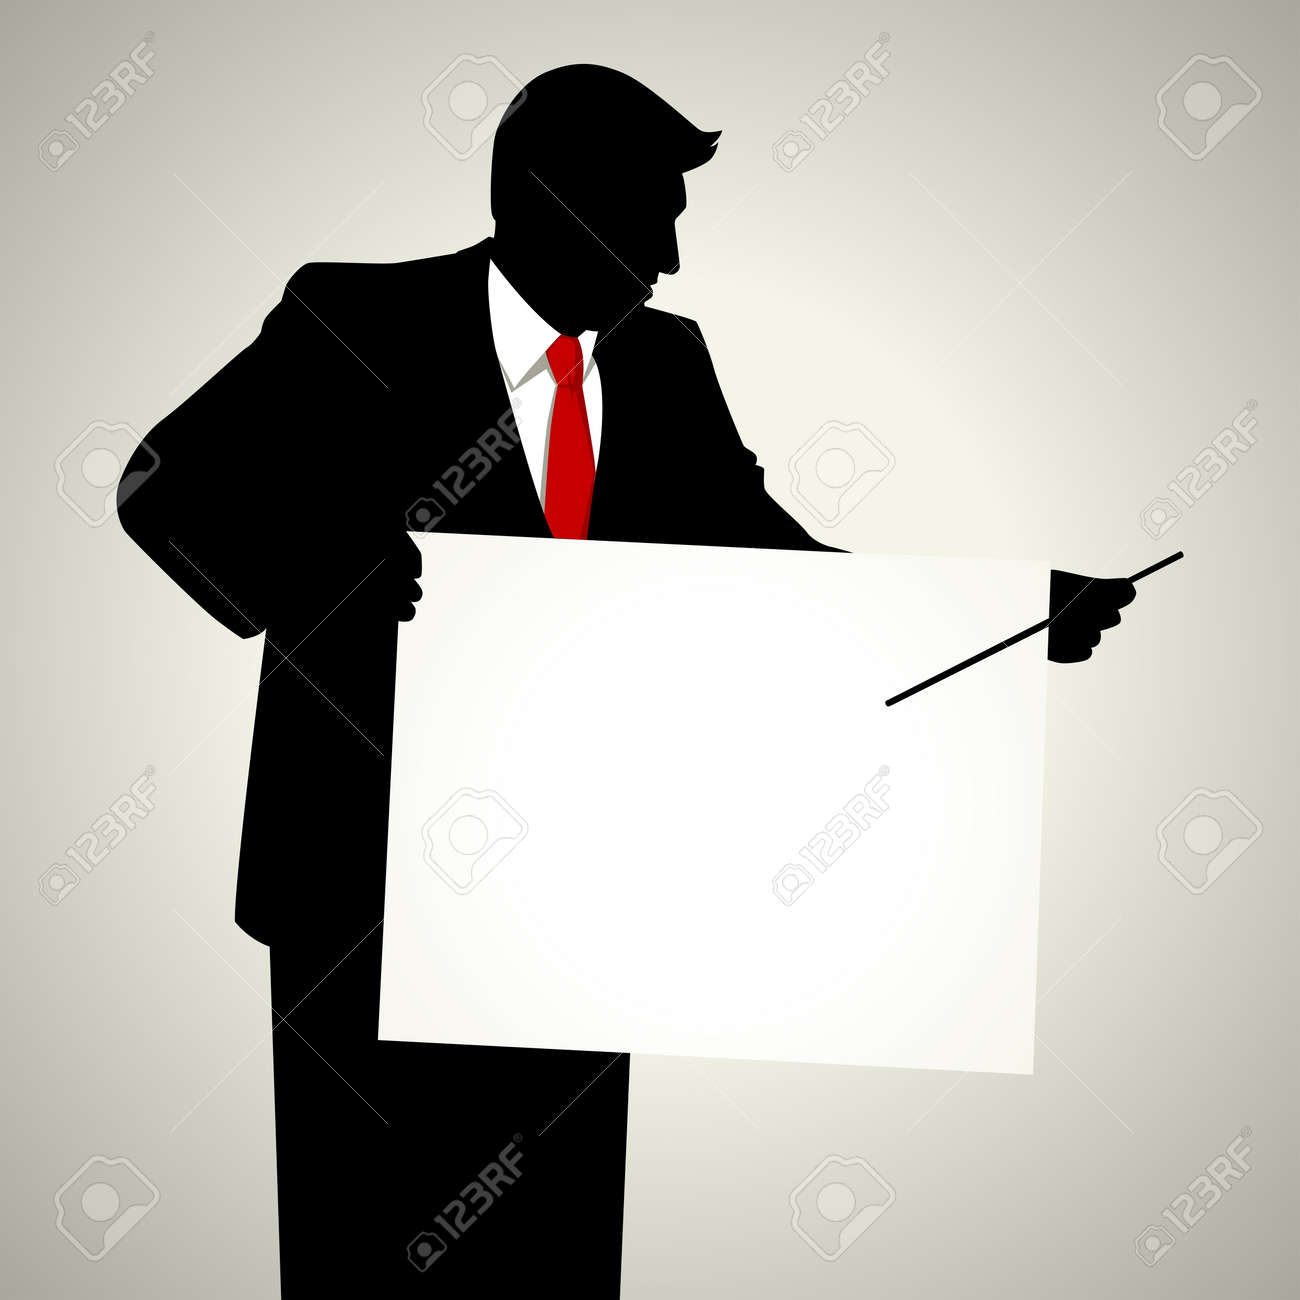 Silhouette illustration of a male figure with presentation board Stock Vector - 11917277